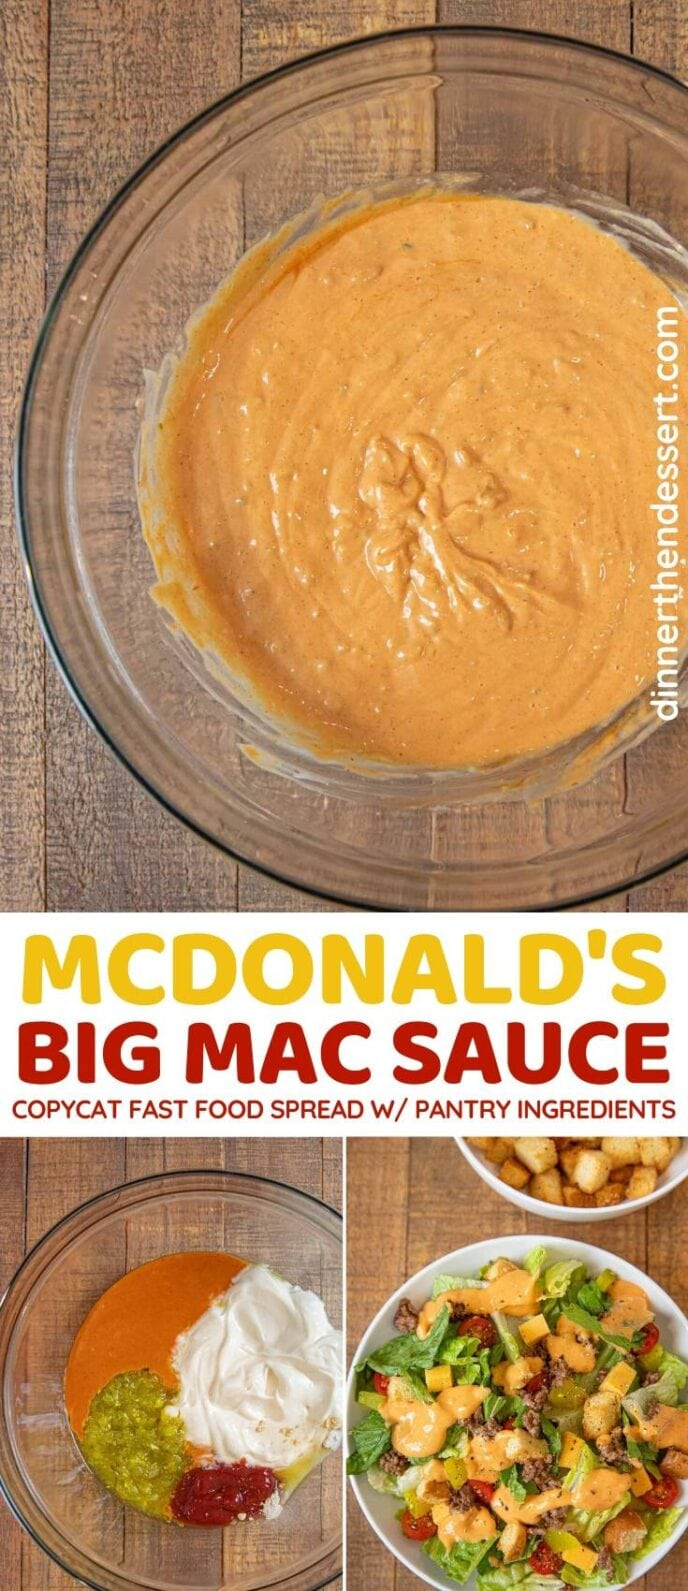 McDonald's Big Mac Sauce Copycat collage